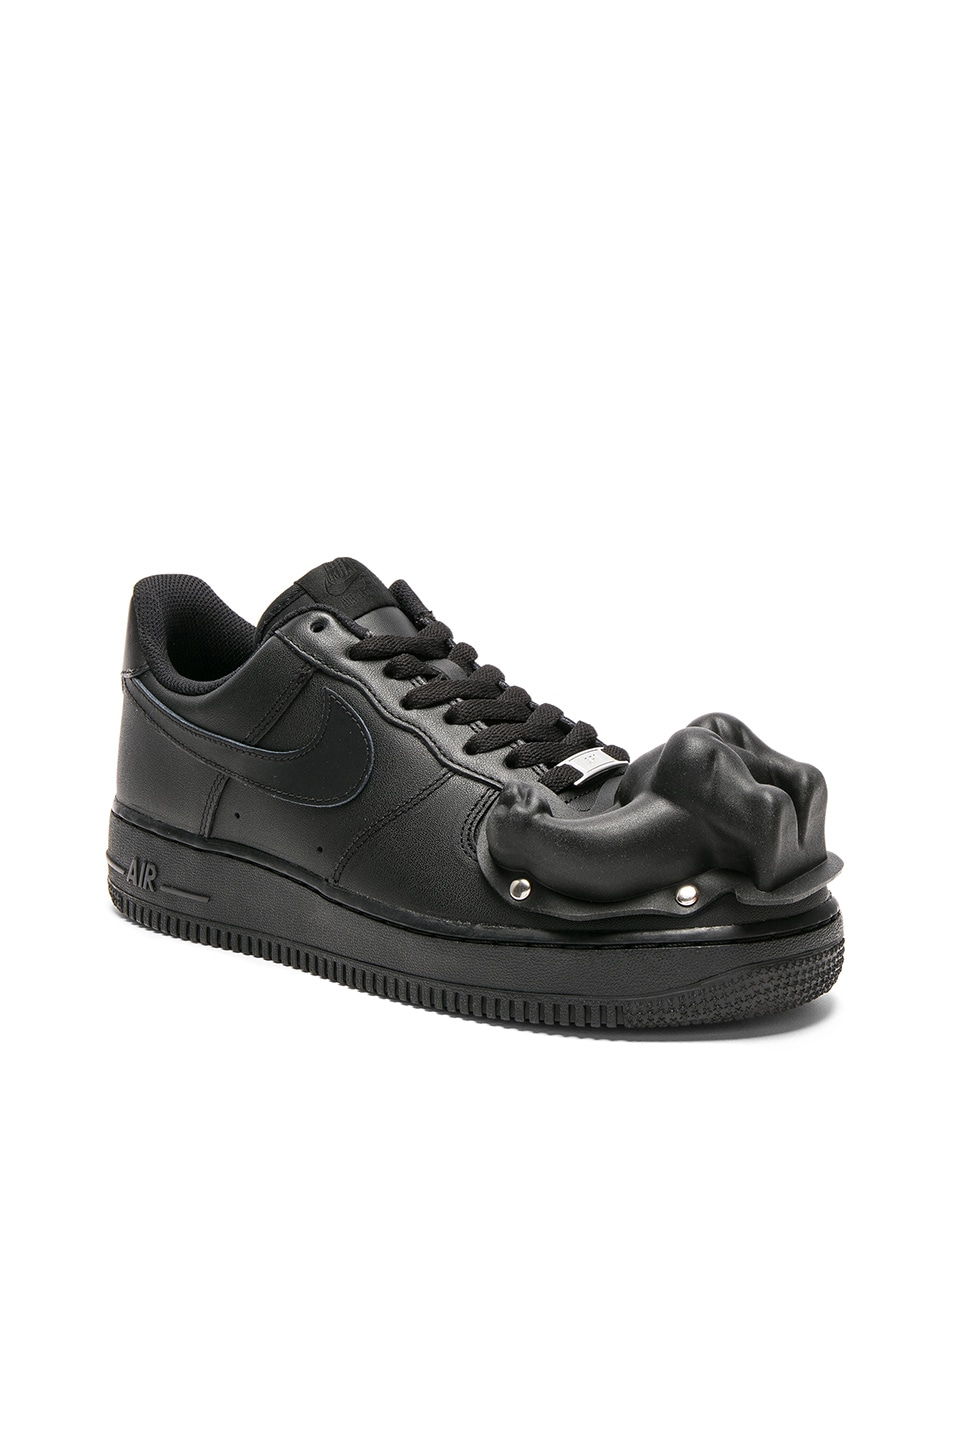 best loved 47b60 e2121 Image 2 of Comme Des Garcons Homme Plus Nike Air Force 1 CDG Custom in Black